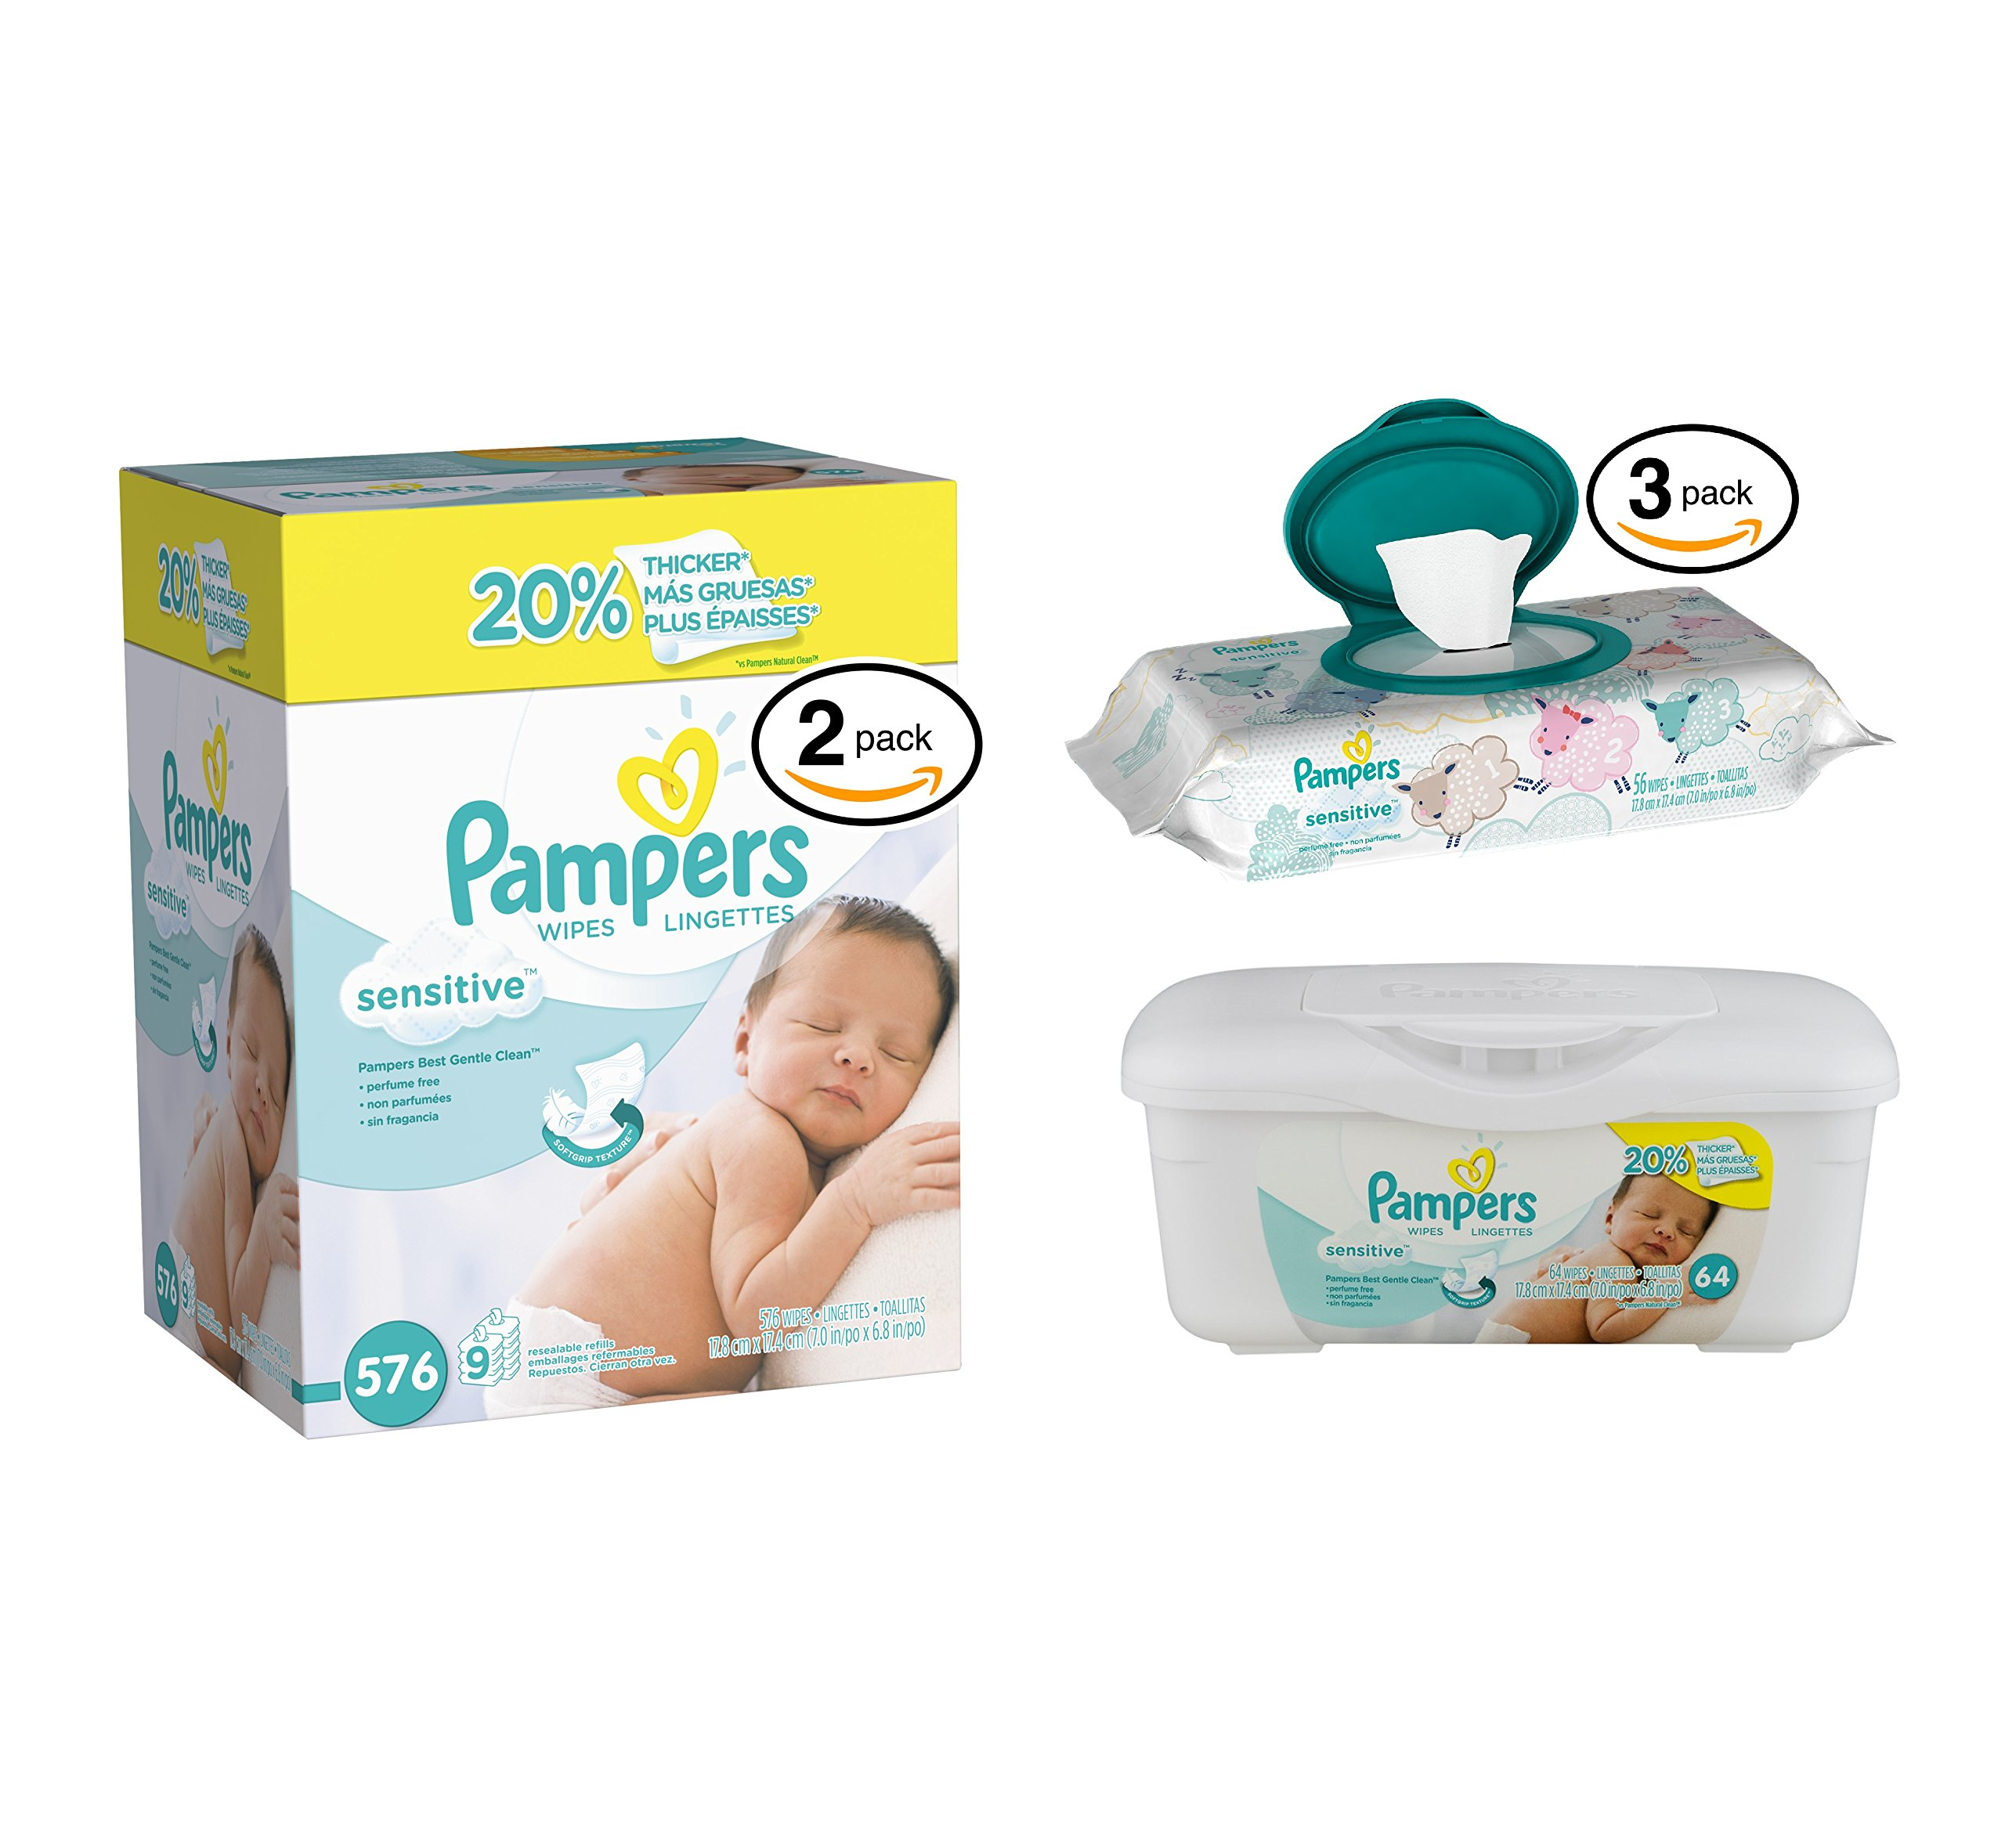 Pampers Sensitive Wipes (18 Refill-64ct / 1 Tub-64ct / 3 Travel Pack-56ct, Sensitive Wipes) by Pampers (Image #1)